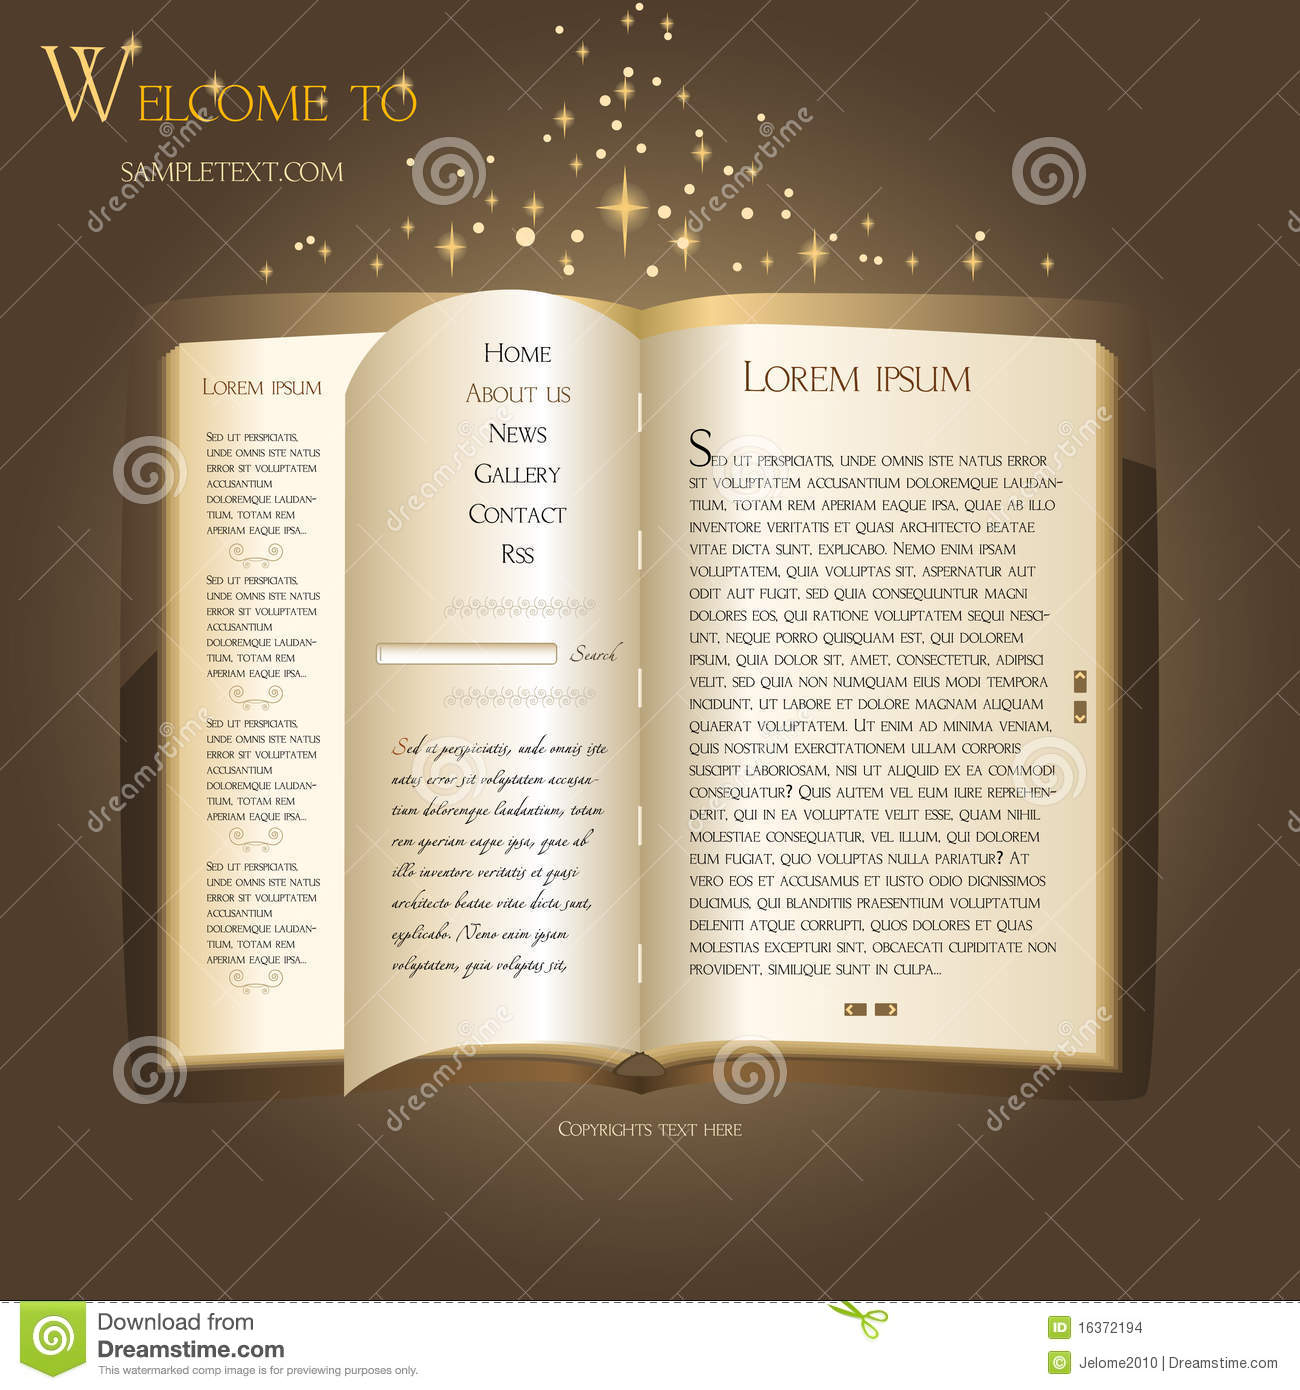 Website design fairytale book stock illustration image 16372194 website design fairytale book pronofoot35fo Choice Image